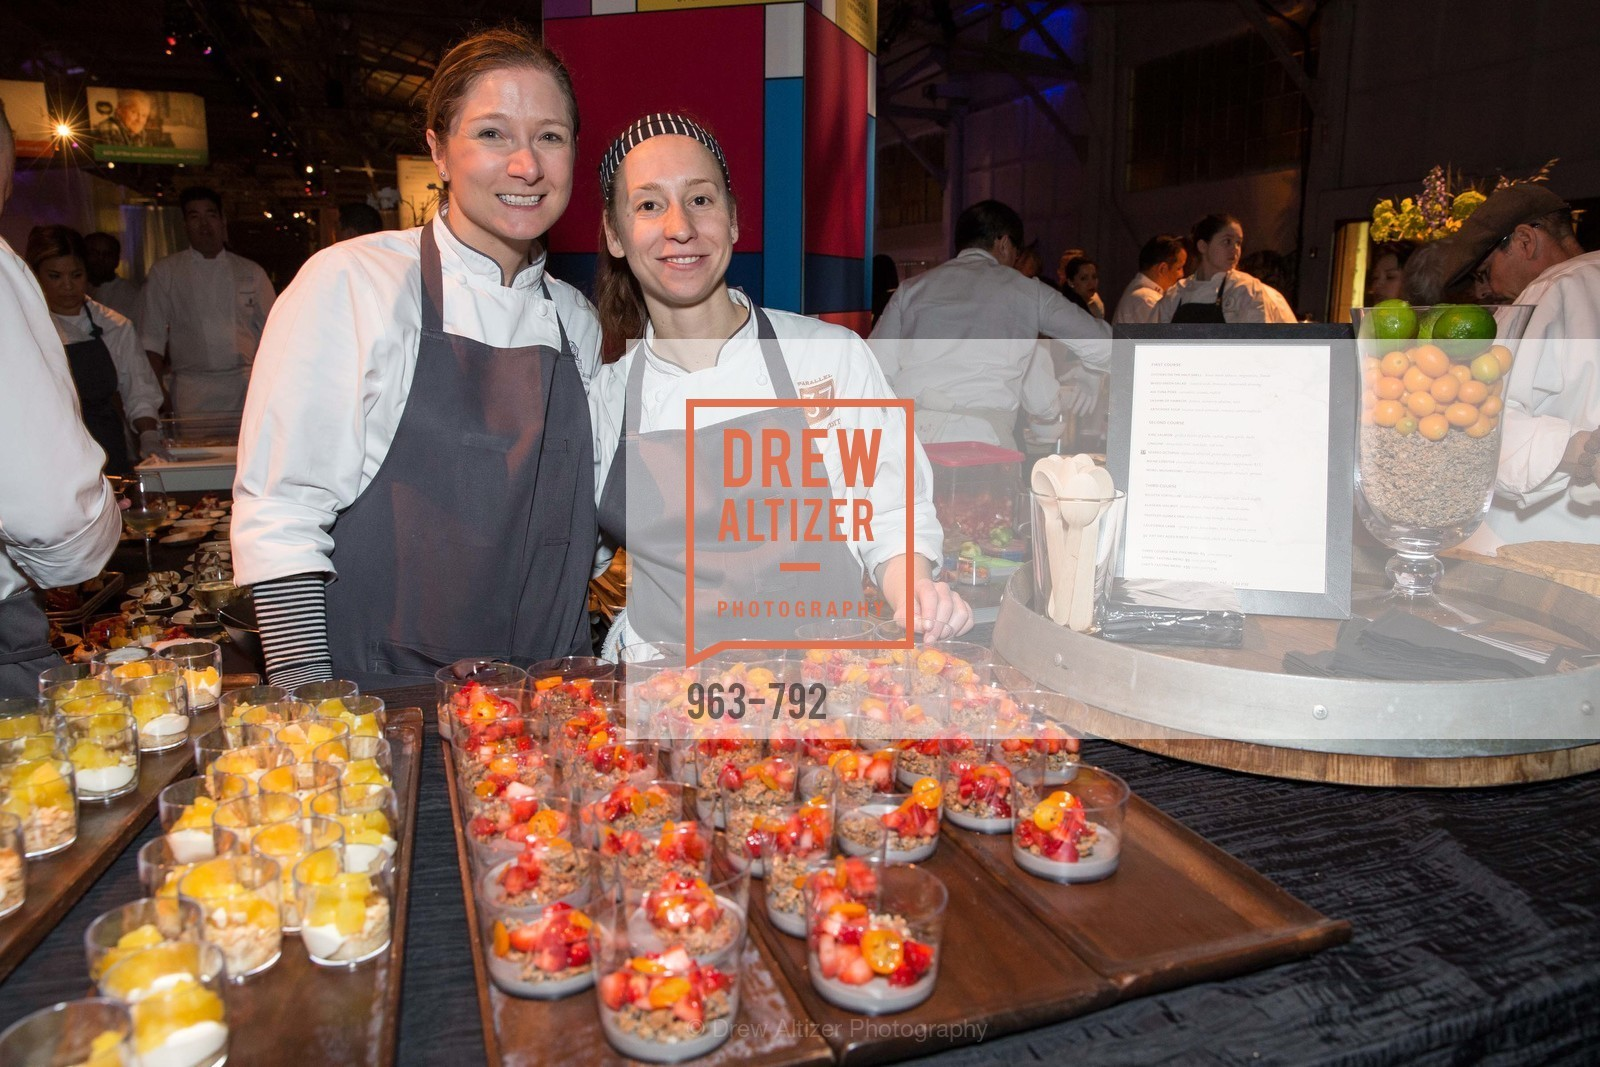 Andrea Correa, Cynthia Salatic, MEALS ON WHEELS OF SAN FRANCISCO'S 28th Annual Star Chefs and Vintners Gala, US, April 20th, 2015,Drew Altizer, Drew Altizer Photography, full-service agency, private events, San Francisco photographer, photographer california